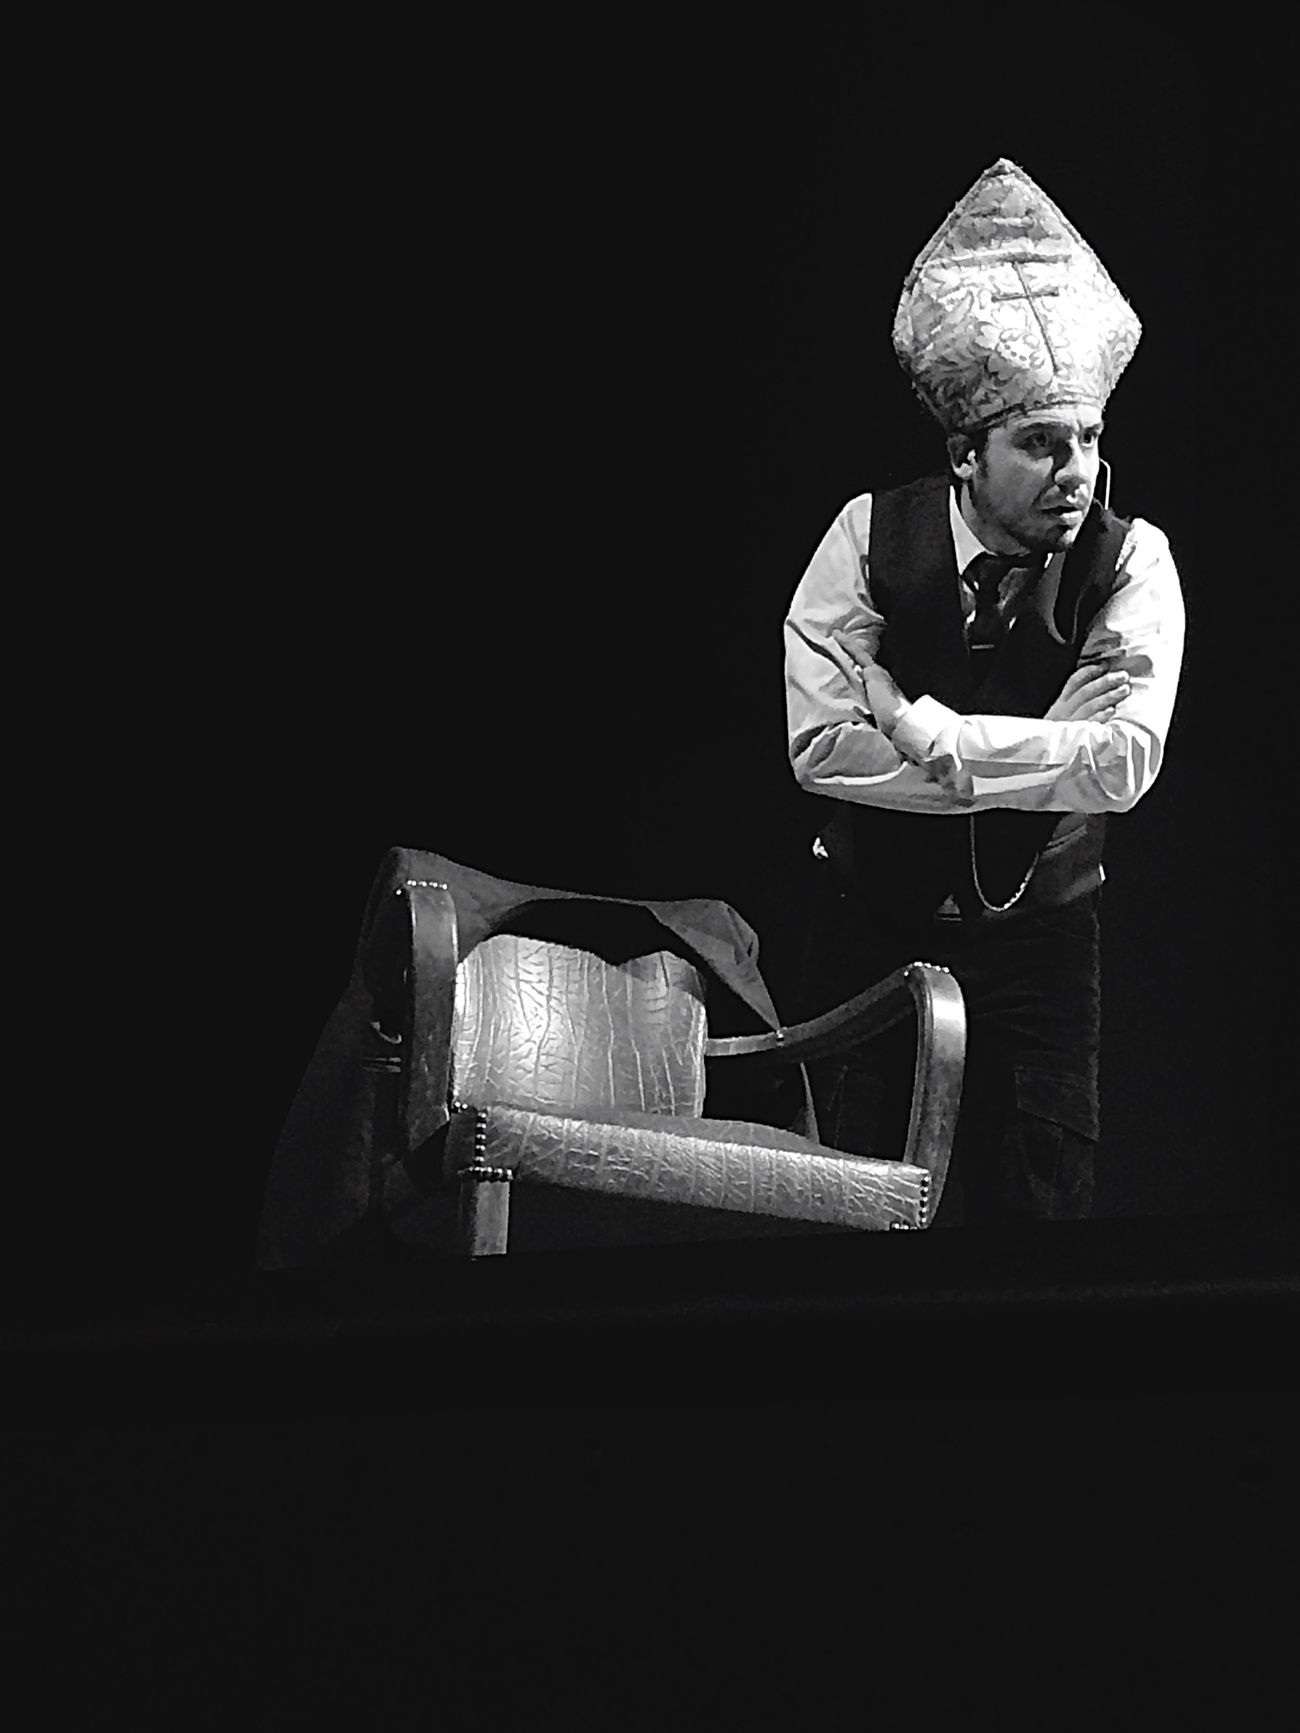 L'Exoconférence. Alexandre Astier Exoconference Spectacle Blackandwhite Extraterrestre